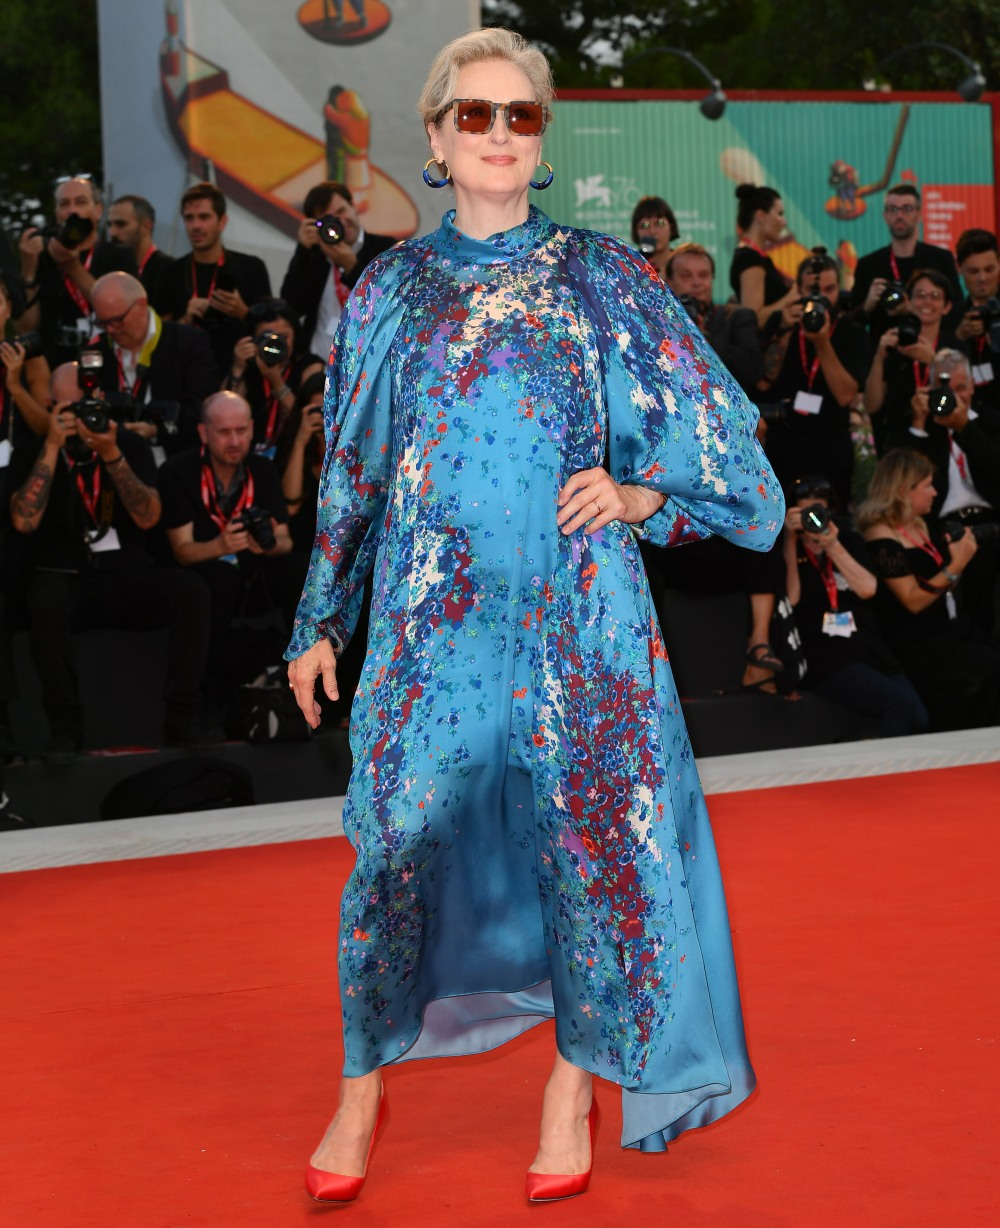 Meryl Streep during the Red carpet of film ' The laundromat ' at the 76th Venice Film Festival, Venice, ITALY-01-09-2019